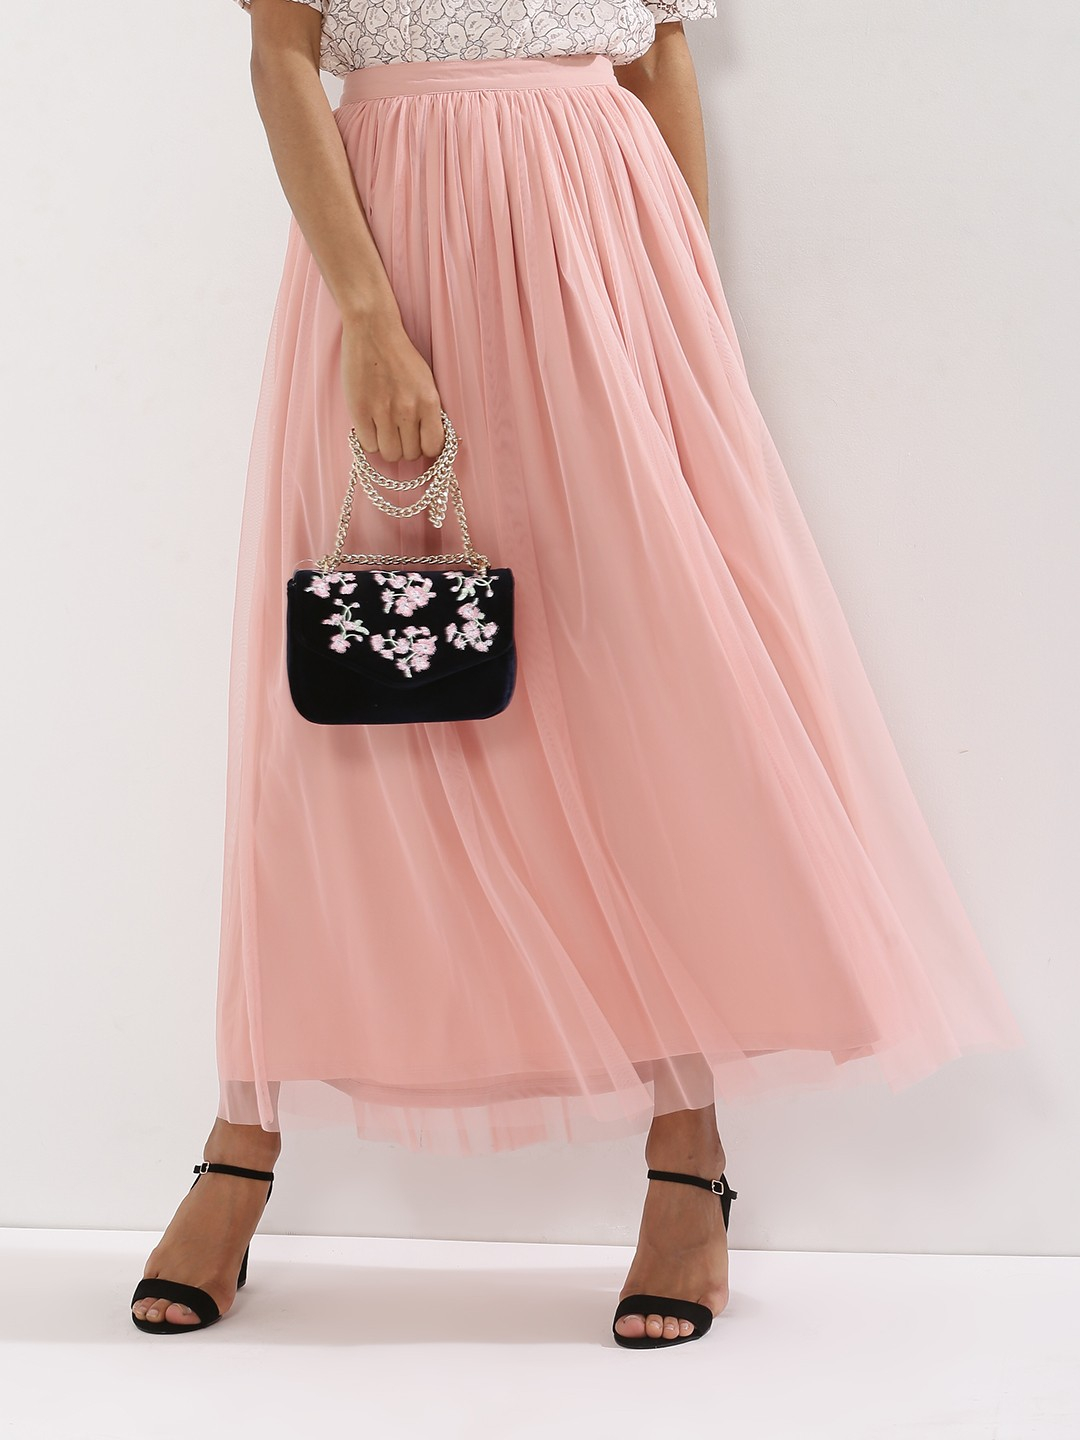 Buy FEMELLA Tulle Maxi Skirt For Women - Women's Pink Maxi Skirts ...